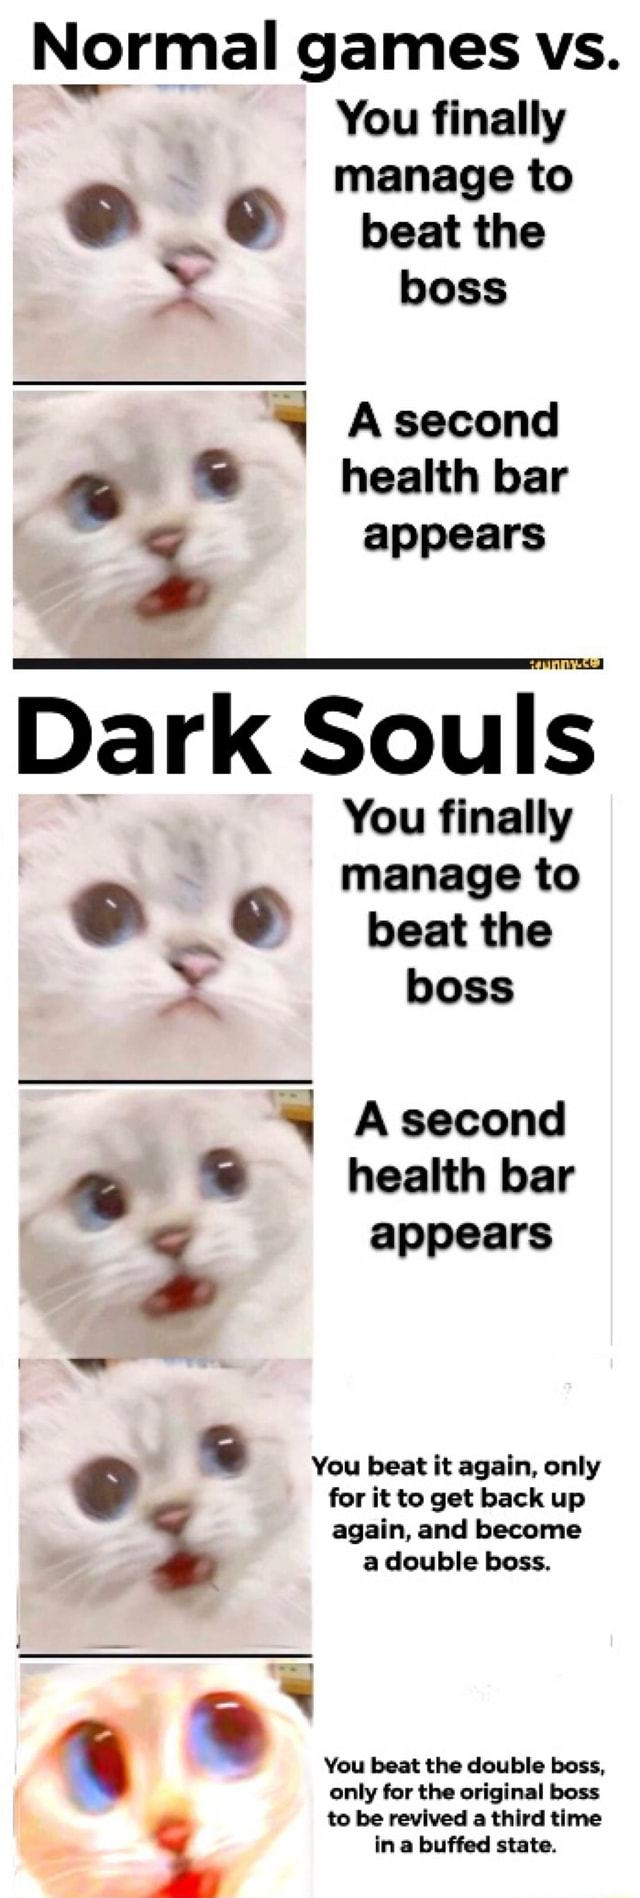 Dark Souls Boss Health Bar : souls, health, Normal, Games, Finally, Manage, Asecond, Souls, Appears, IFunny